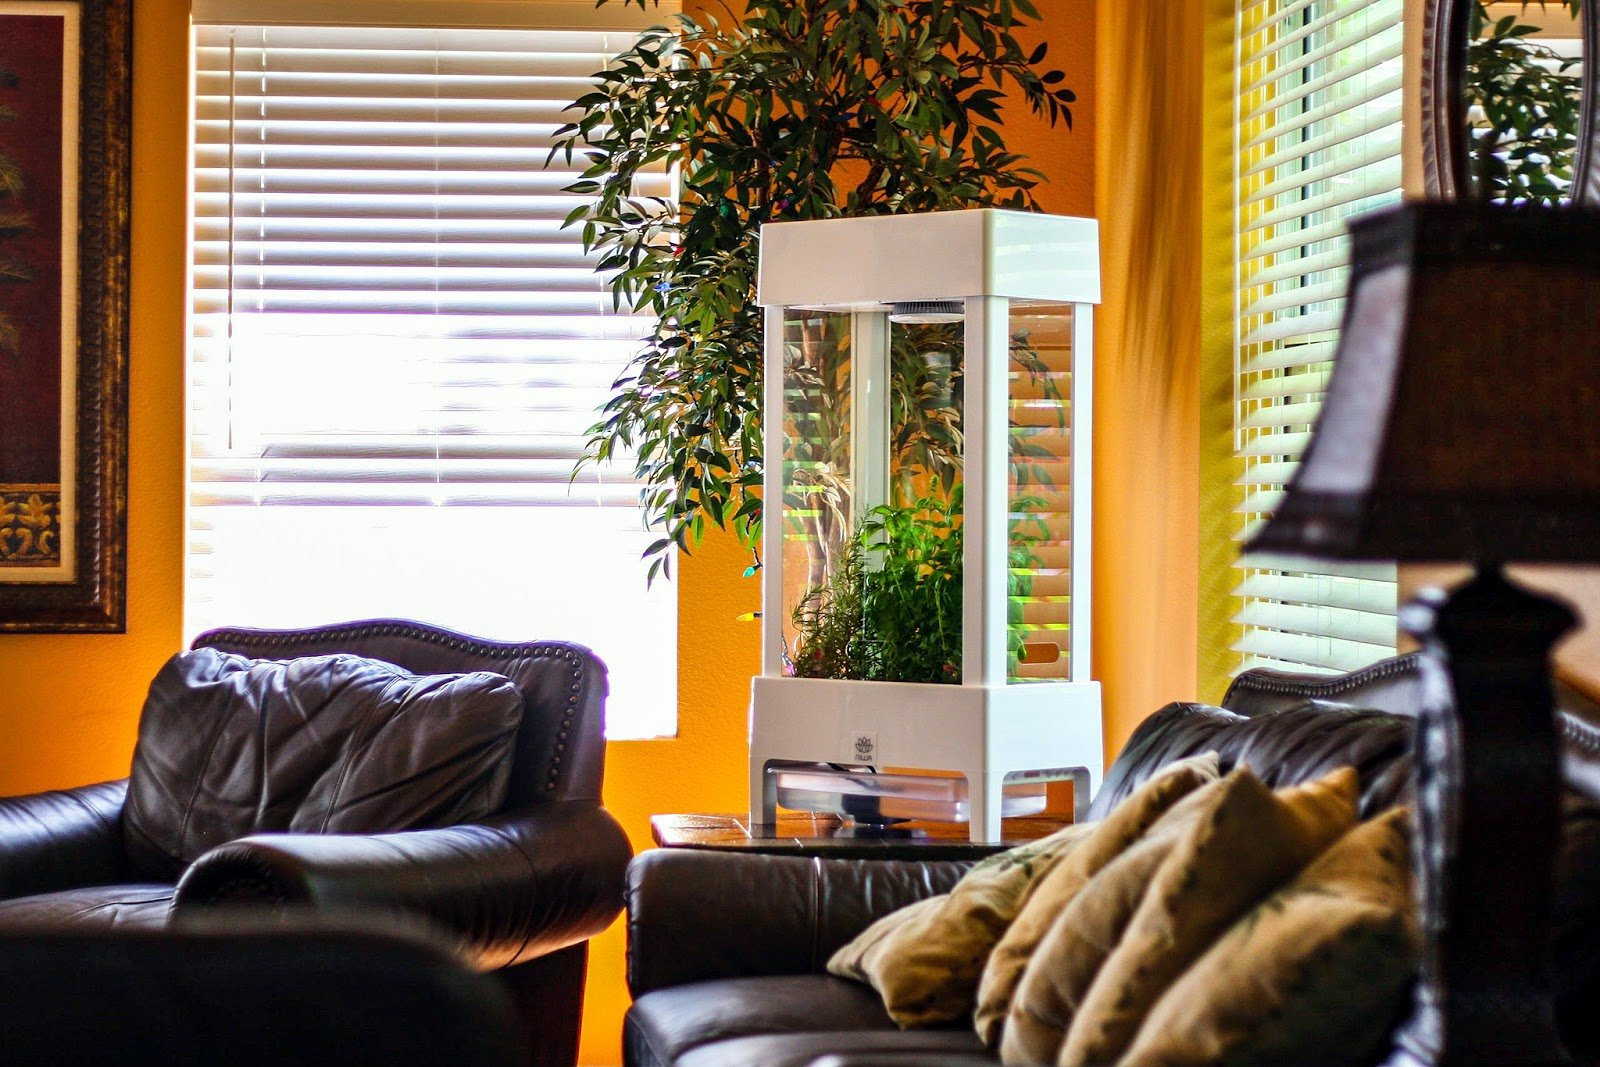 5 Tips for Growing a Luscious Indoor Garden With Smart Tech